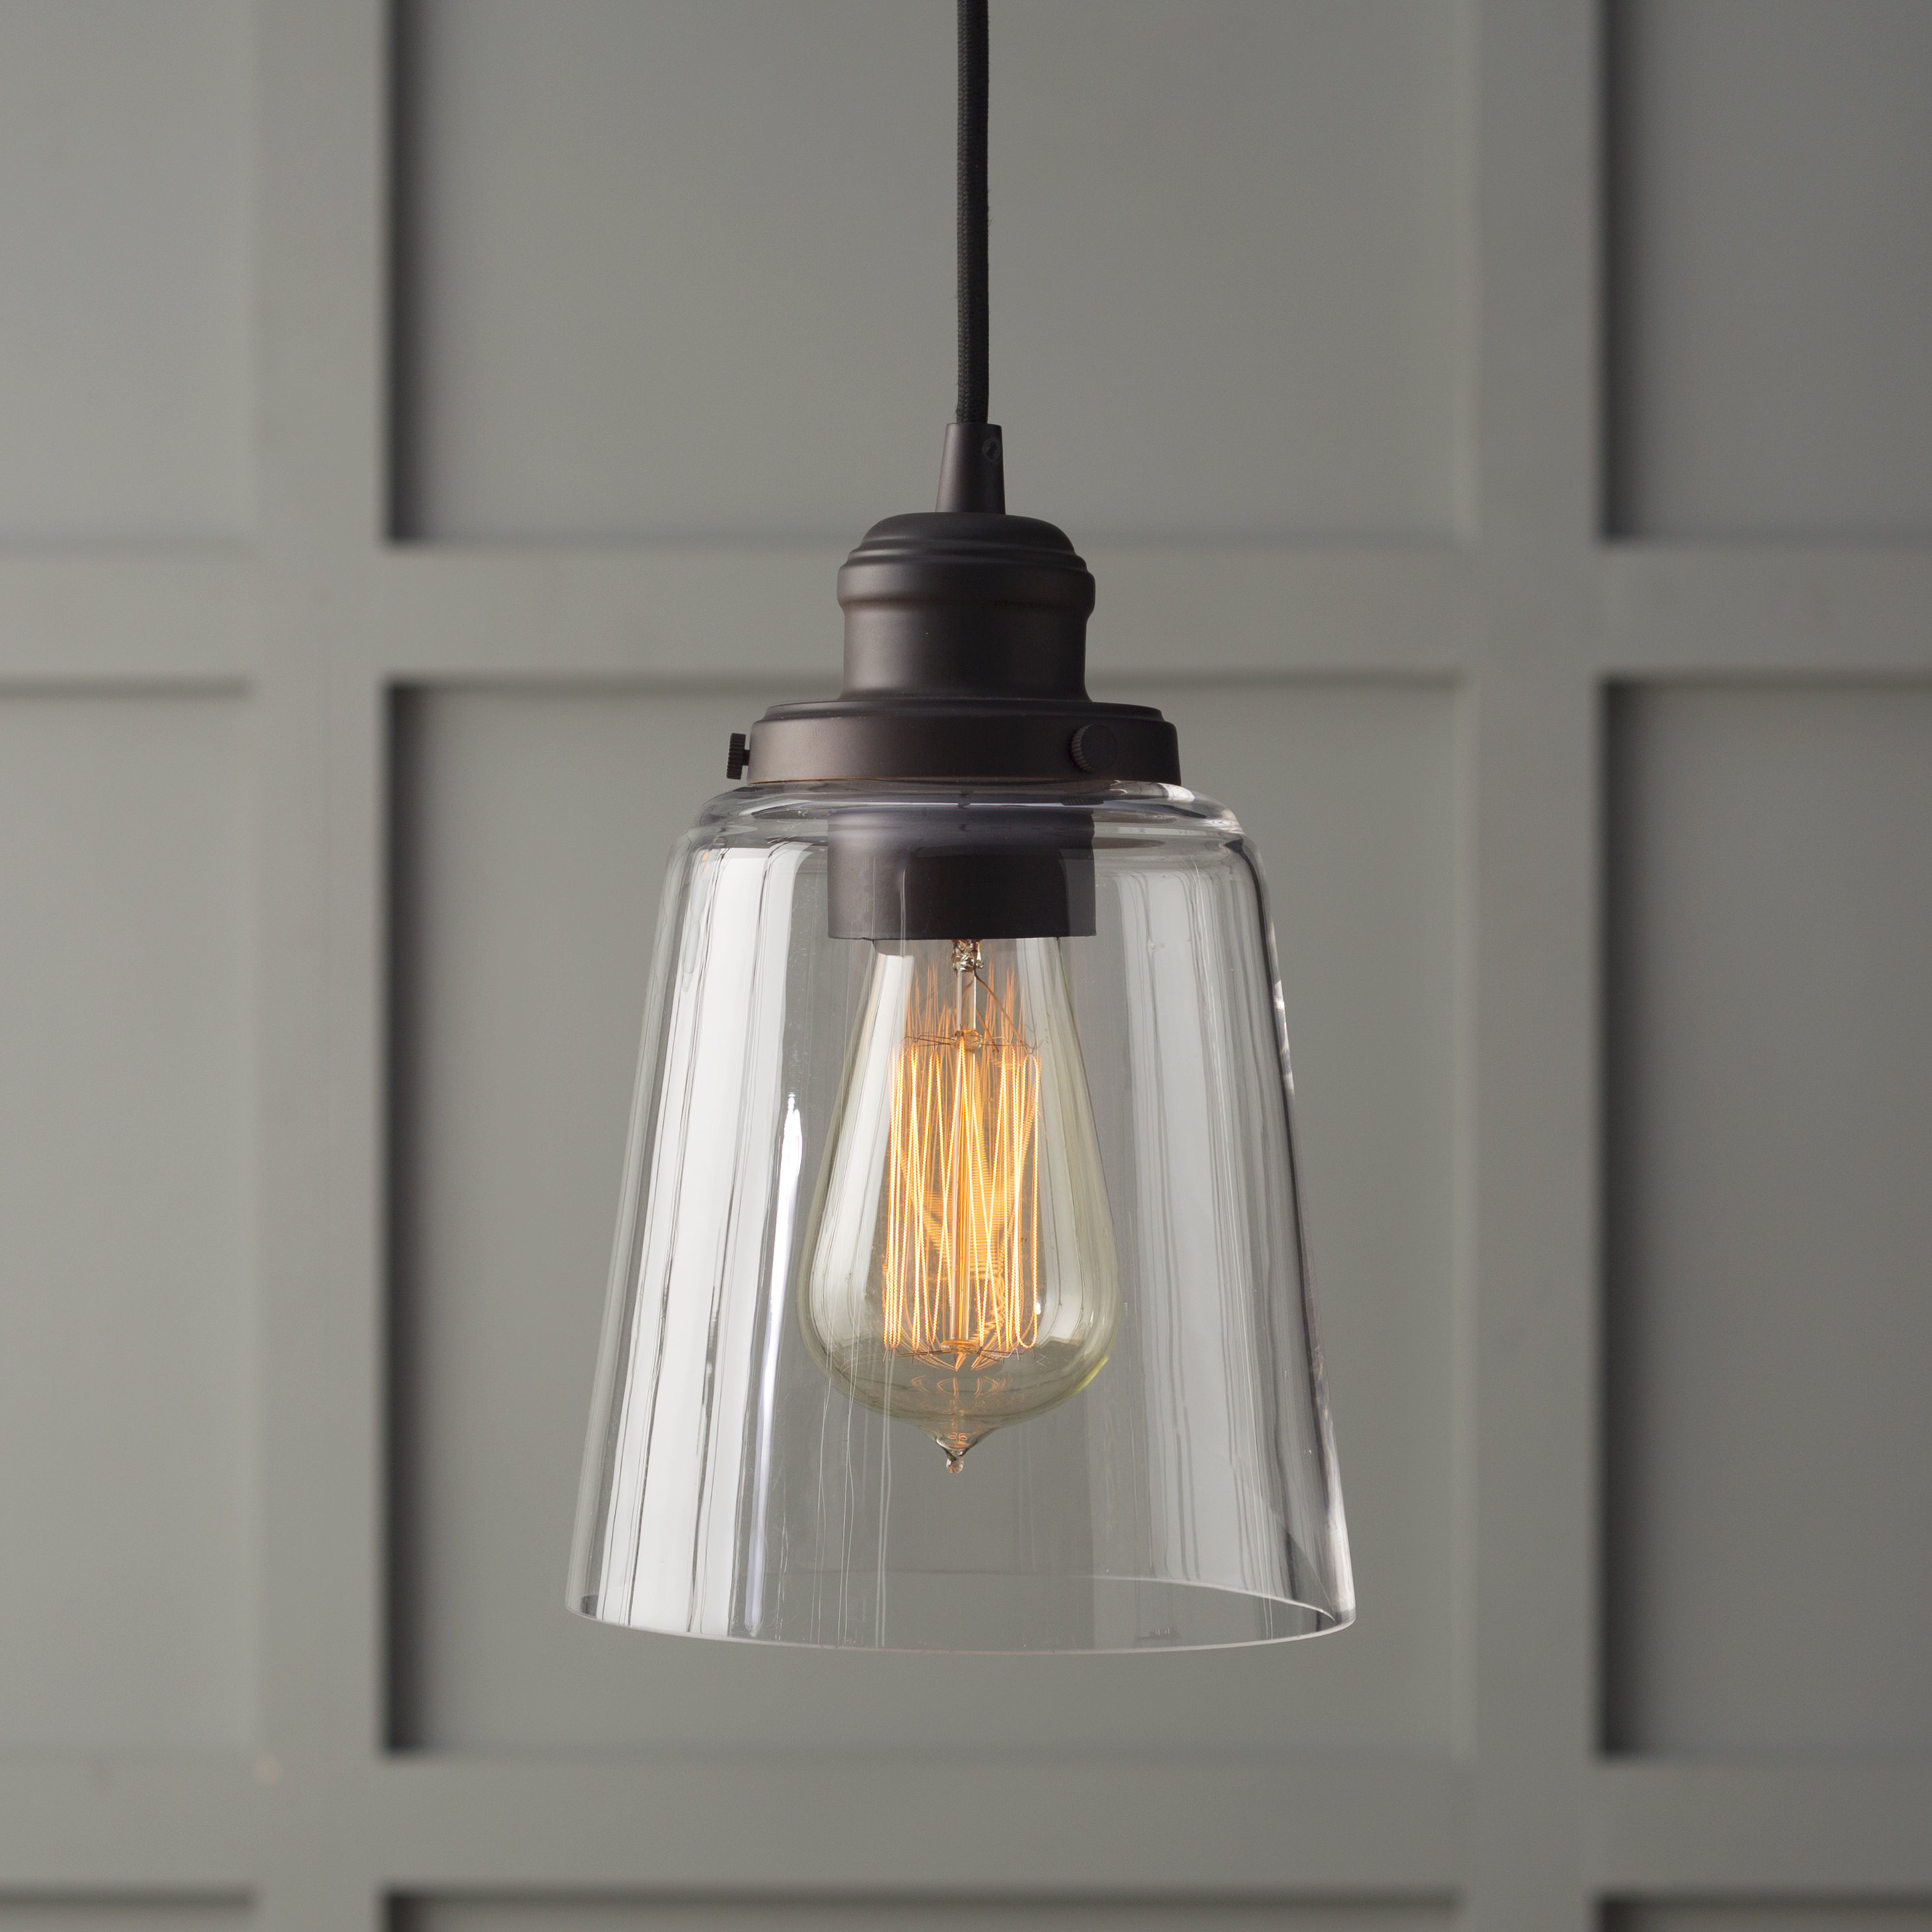 Fashionable Fresno Dome 1 Light Bell Pendants Pertaining To 1 Light Single Bell Pendant (View 6 of 20)